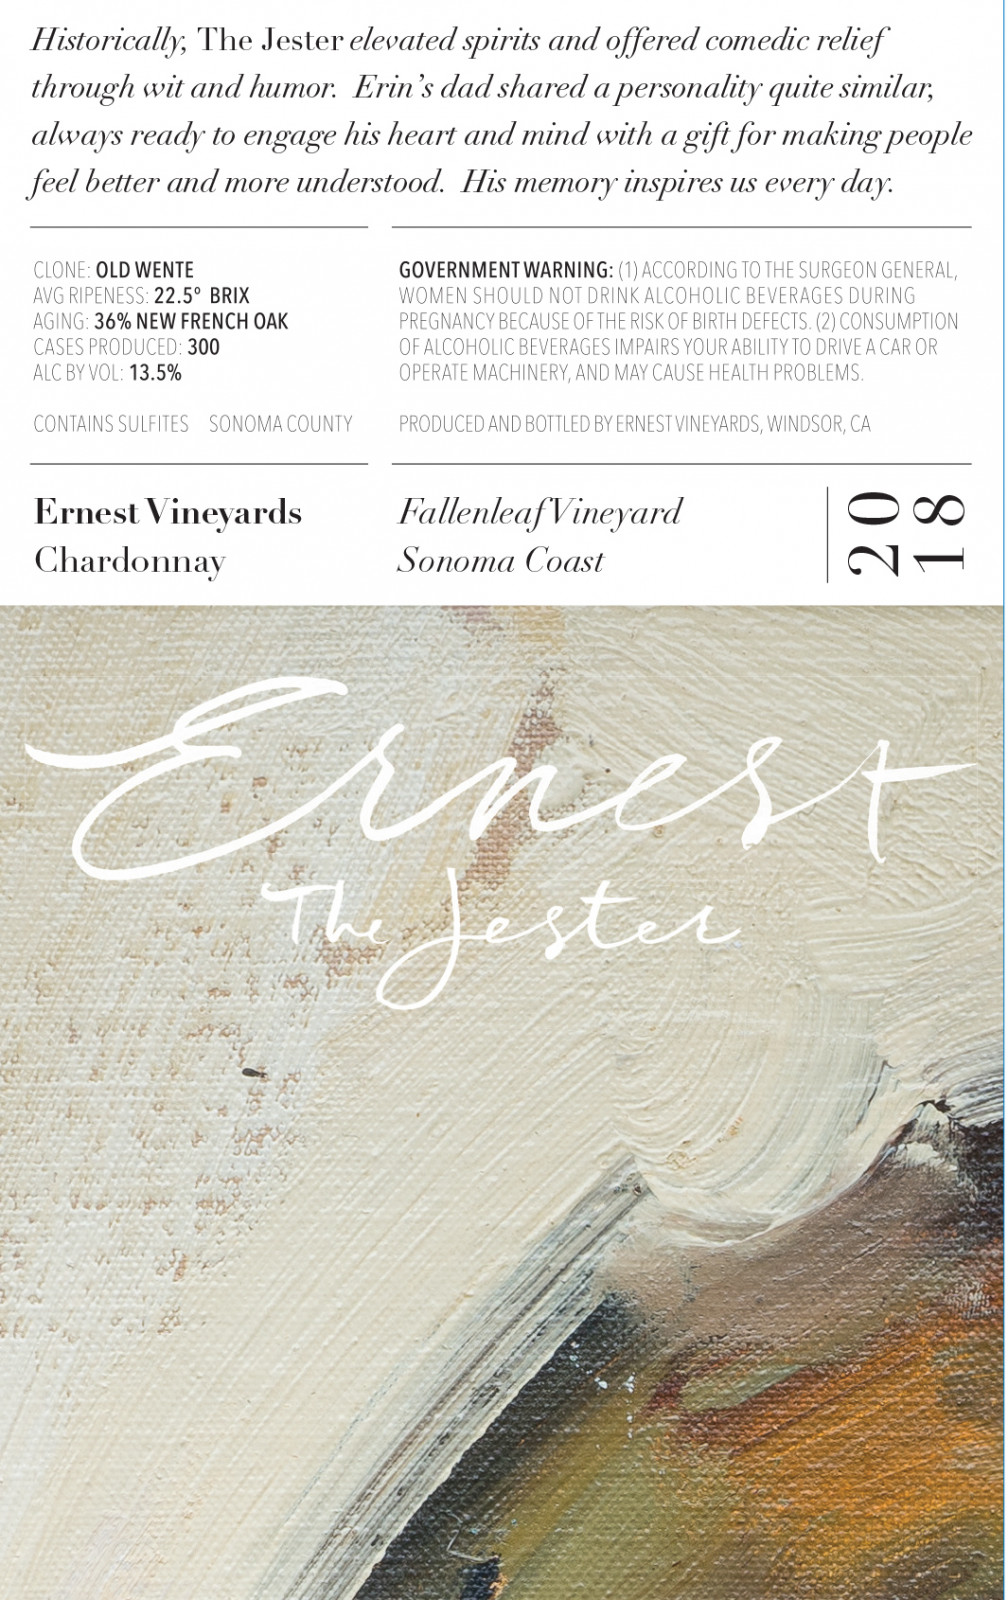 Fallenleaf Vineyard Chardonnay 2018 The Jester - Ernest Vineyards